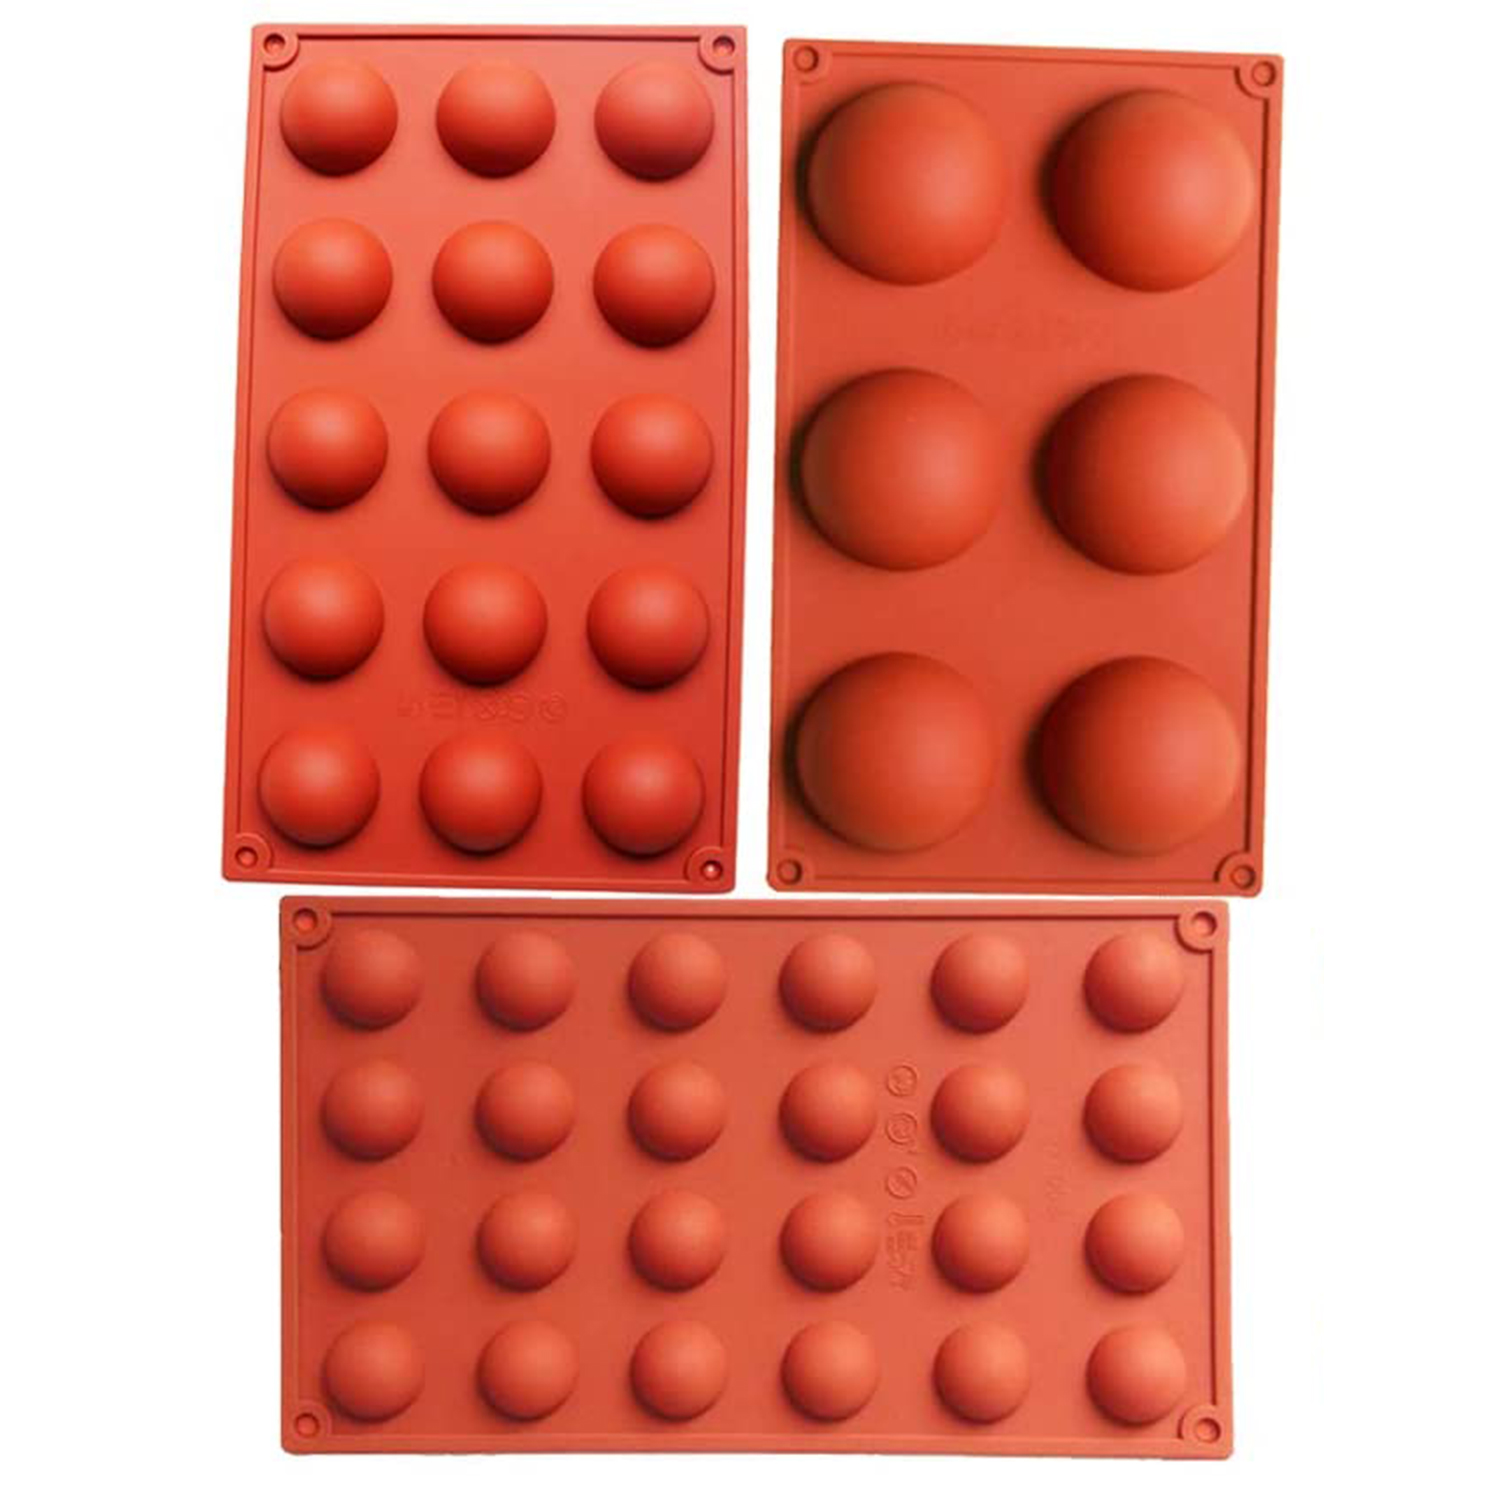 Holes Silicone Mold For Chocolate